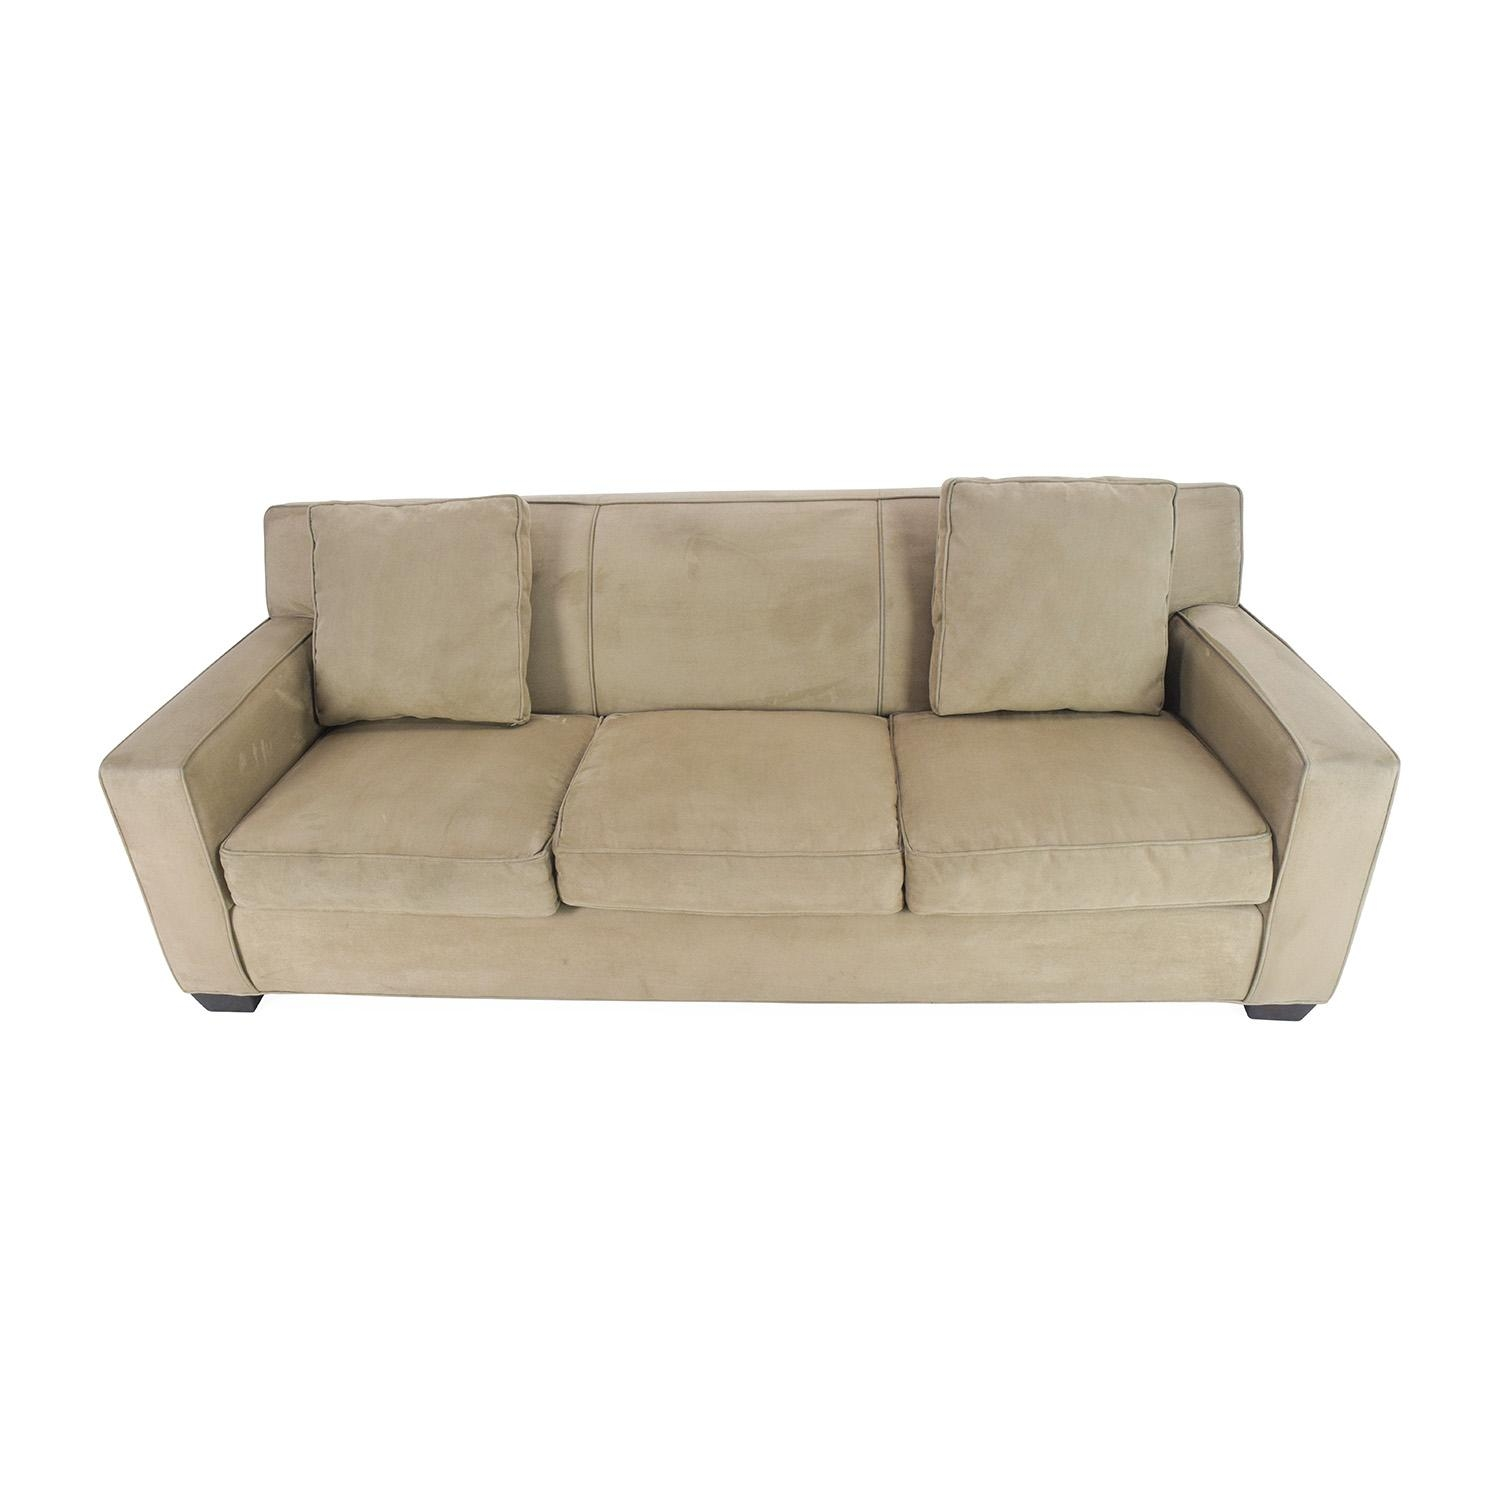 78% Off - Crate And Barrel Crate And Barrel Cameron Sofa / Sofas regarding Crate And Barrel Futon Sofas